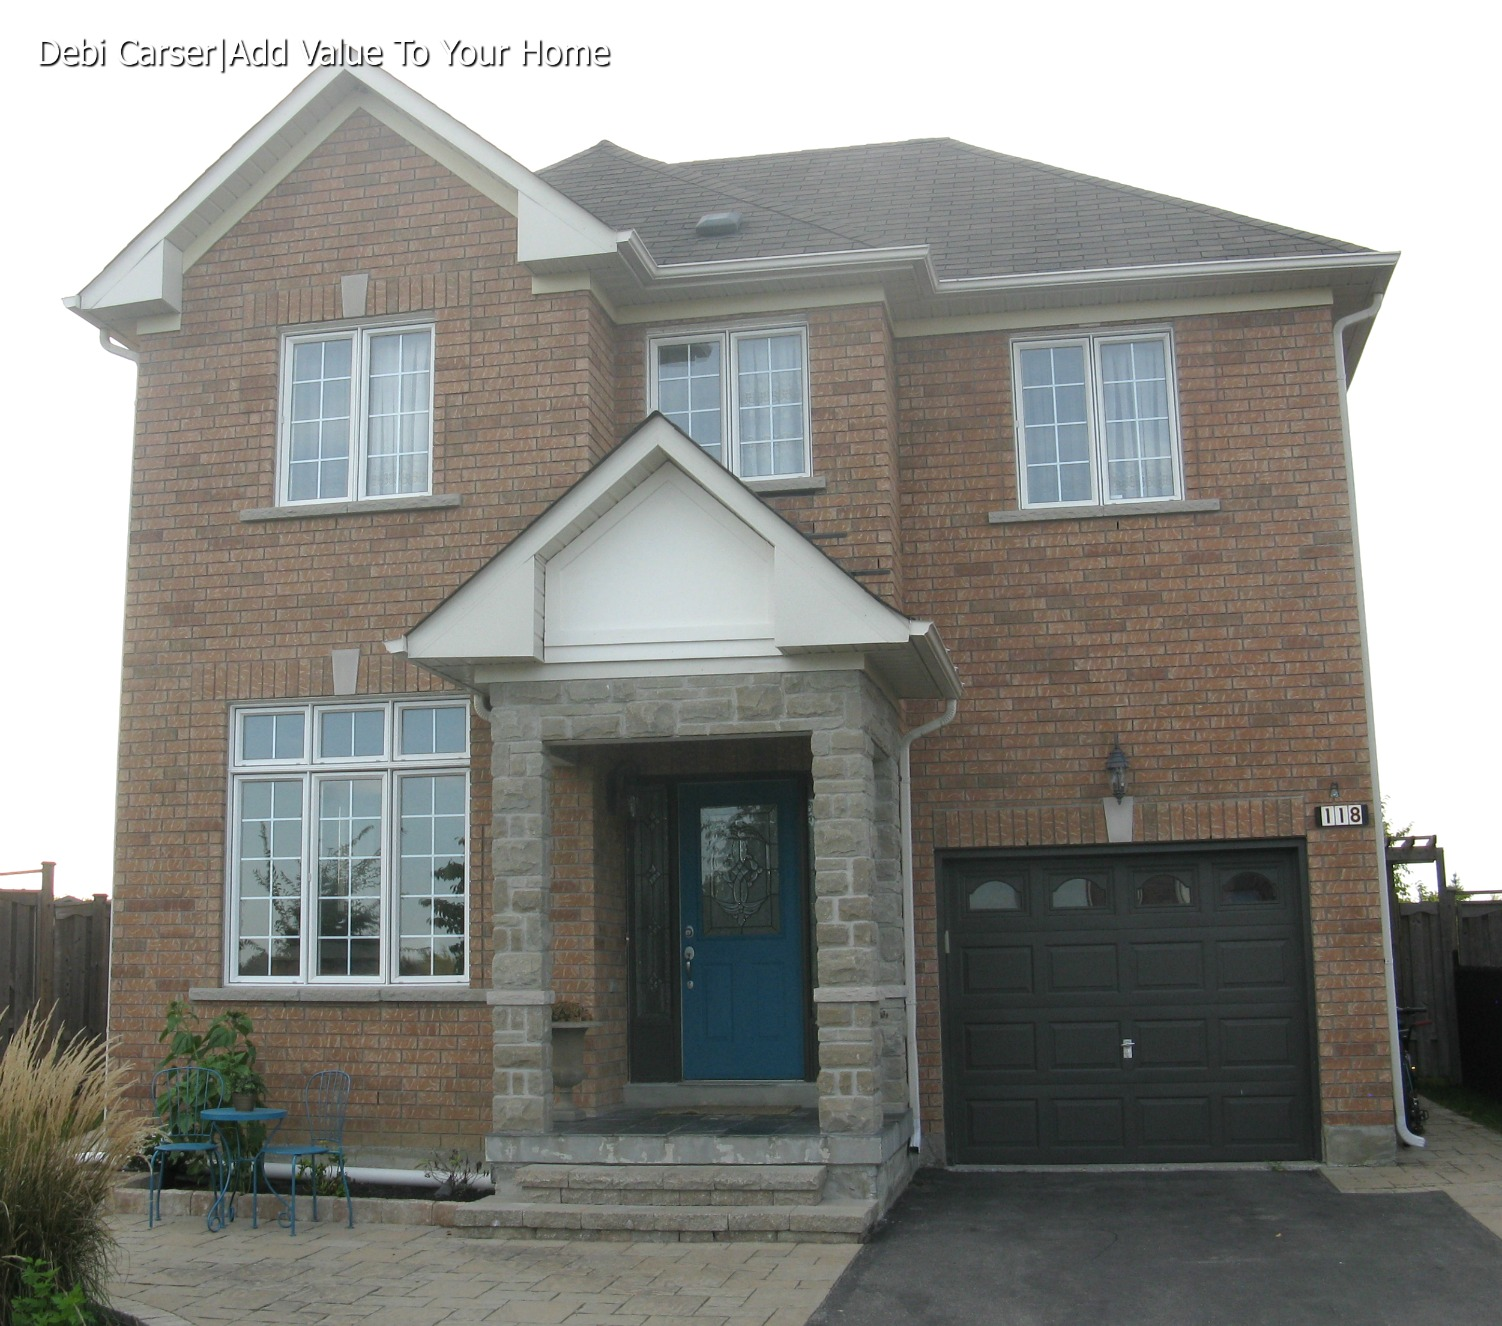 curb-appeal-Debi-Collinson-Add-Value-To-Your-Home